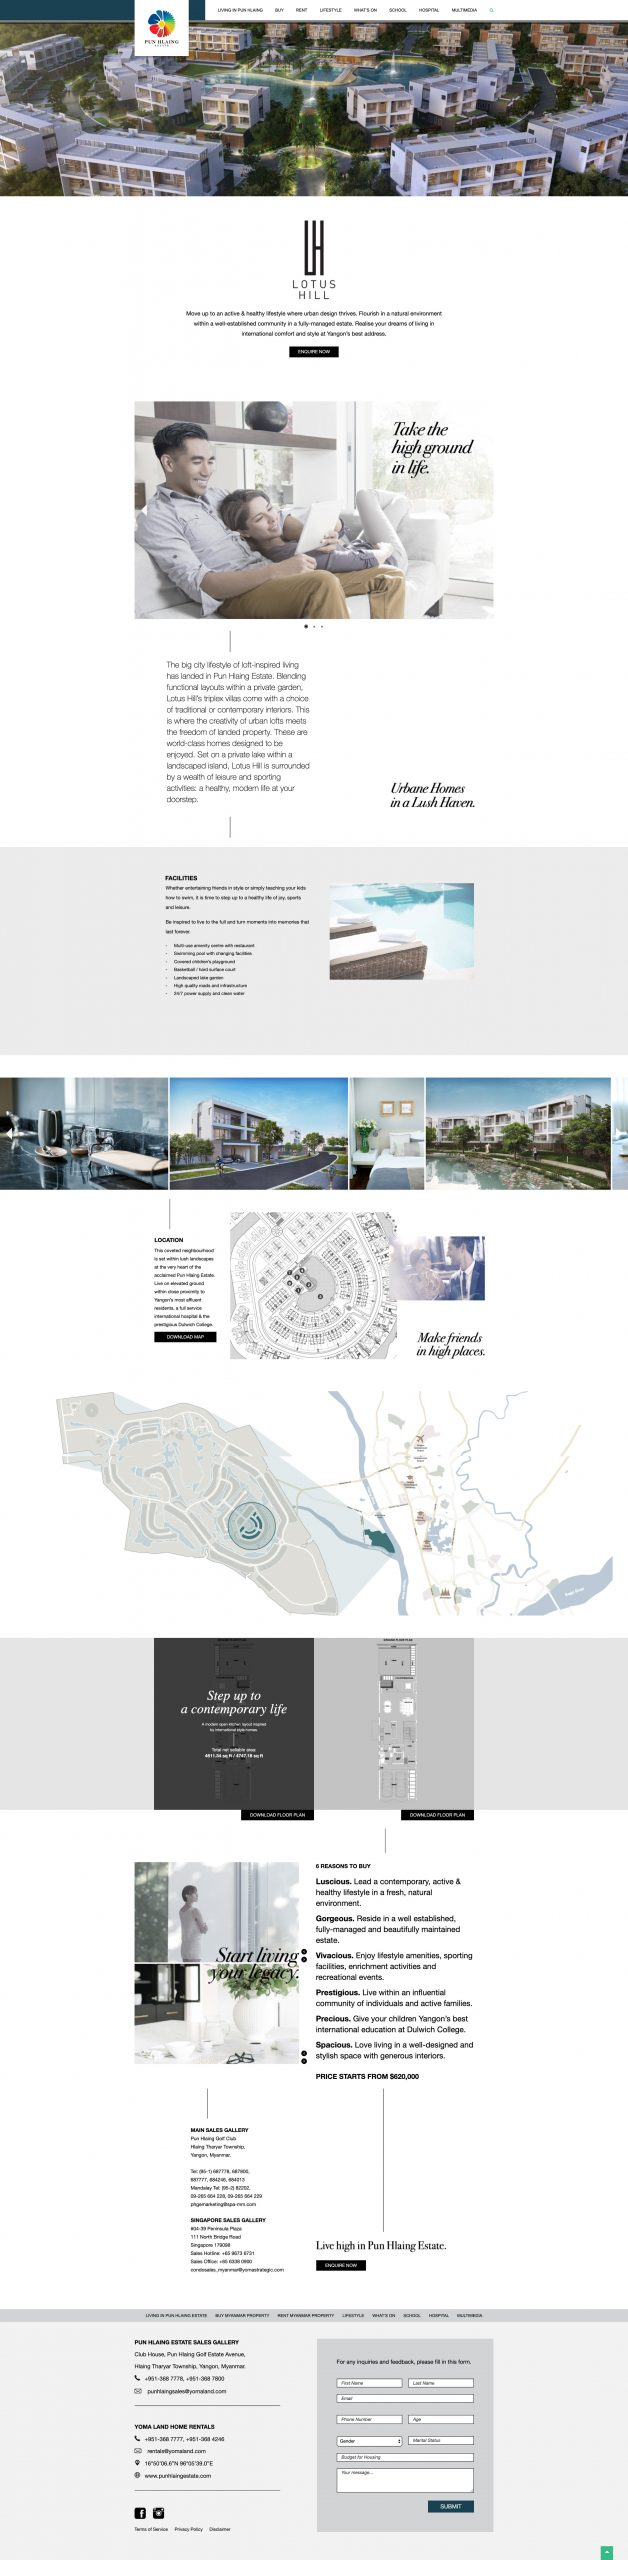 Pun Hlaing Lotus Hill property development landing page